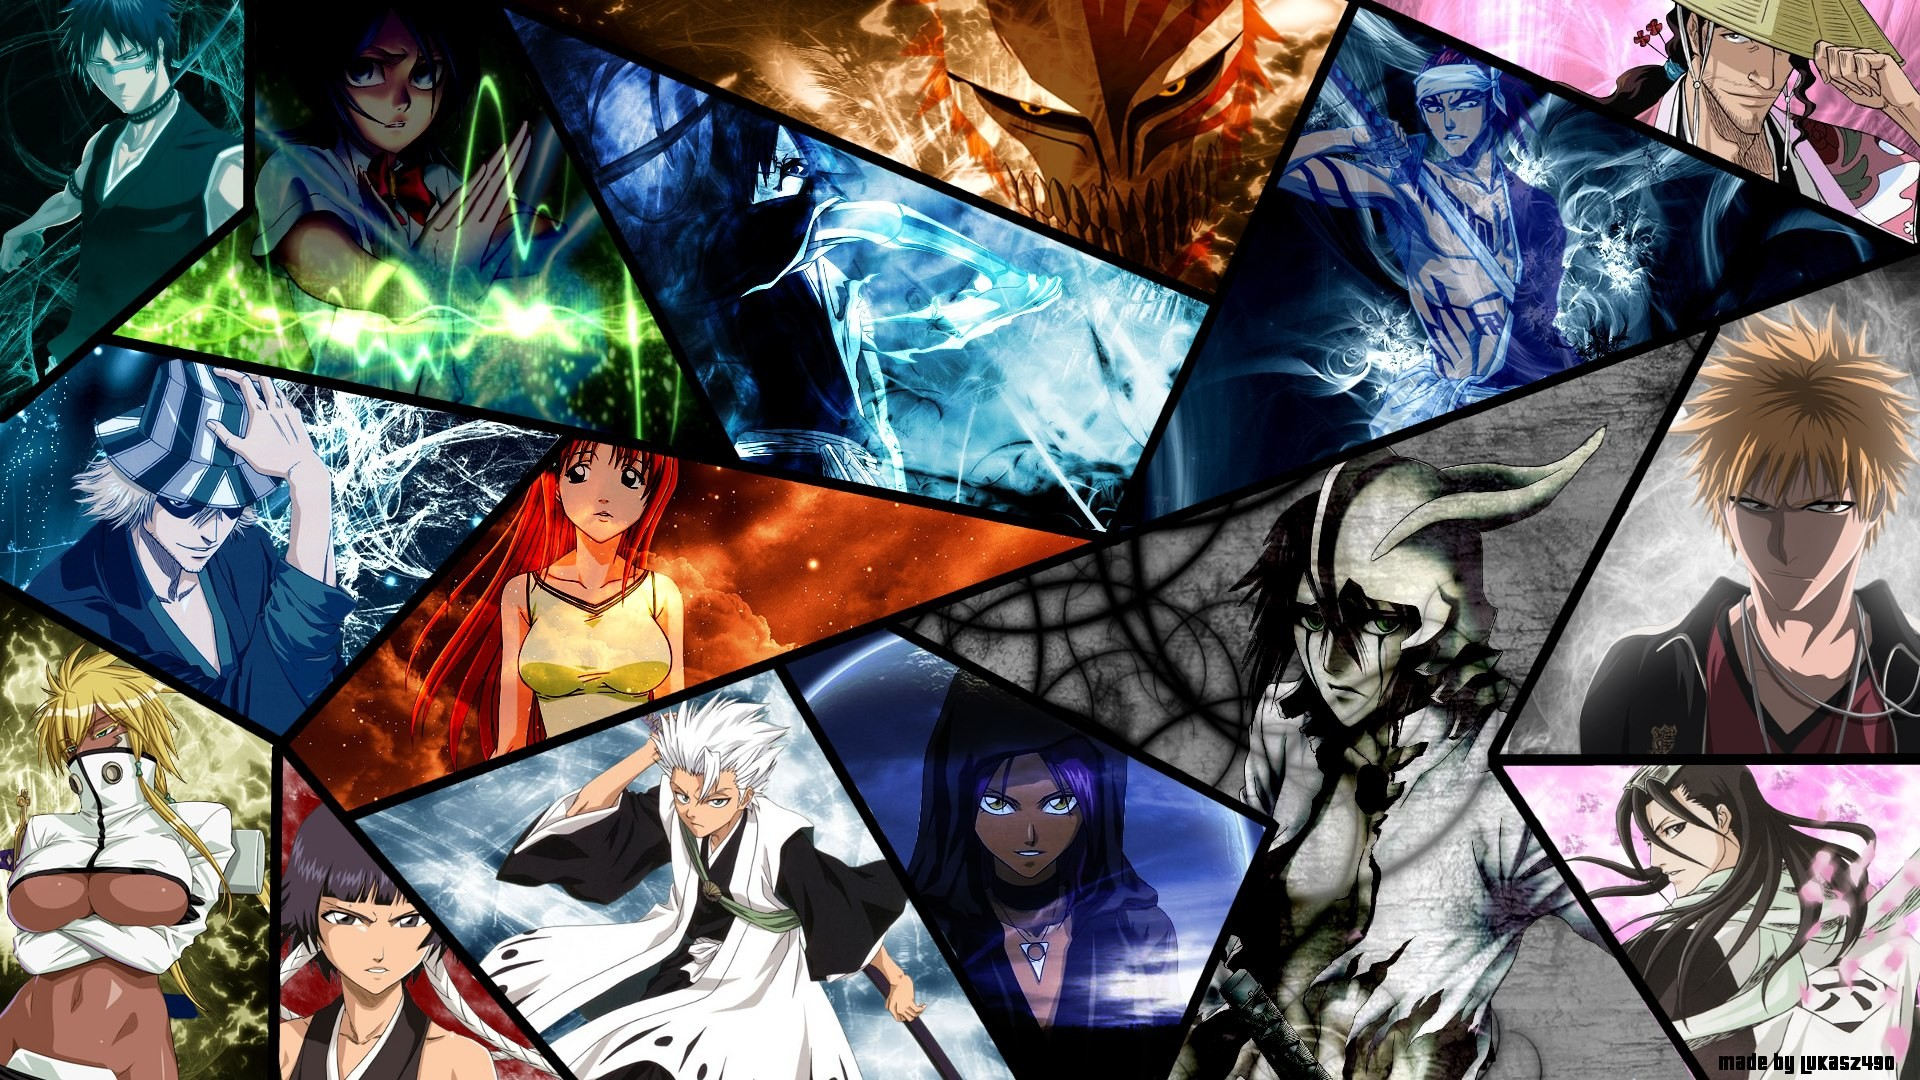 Res: 1920x1080, Bleach Wallpaper 1920 x 1080